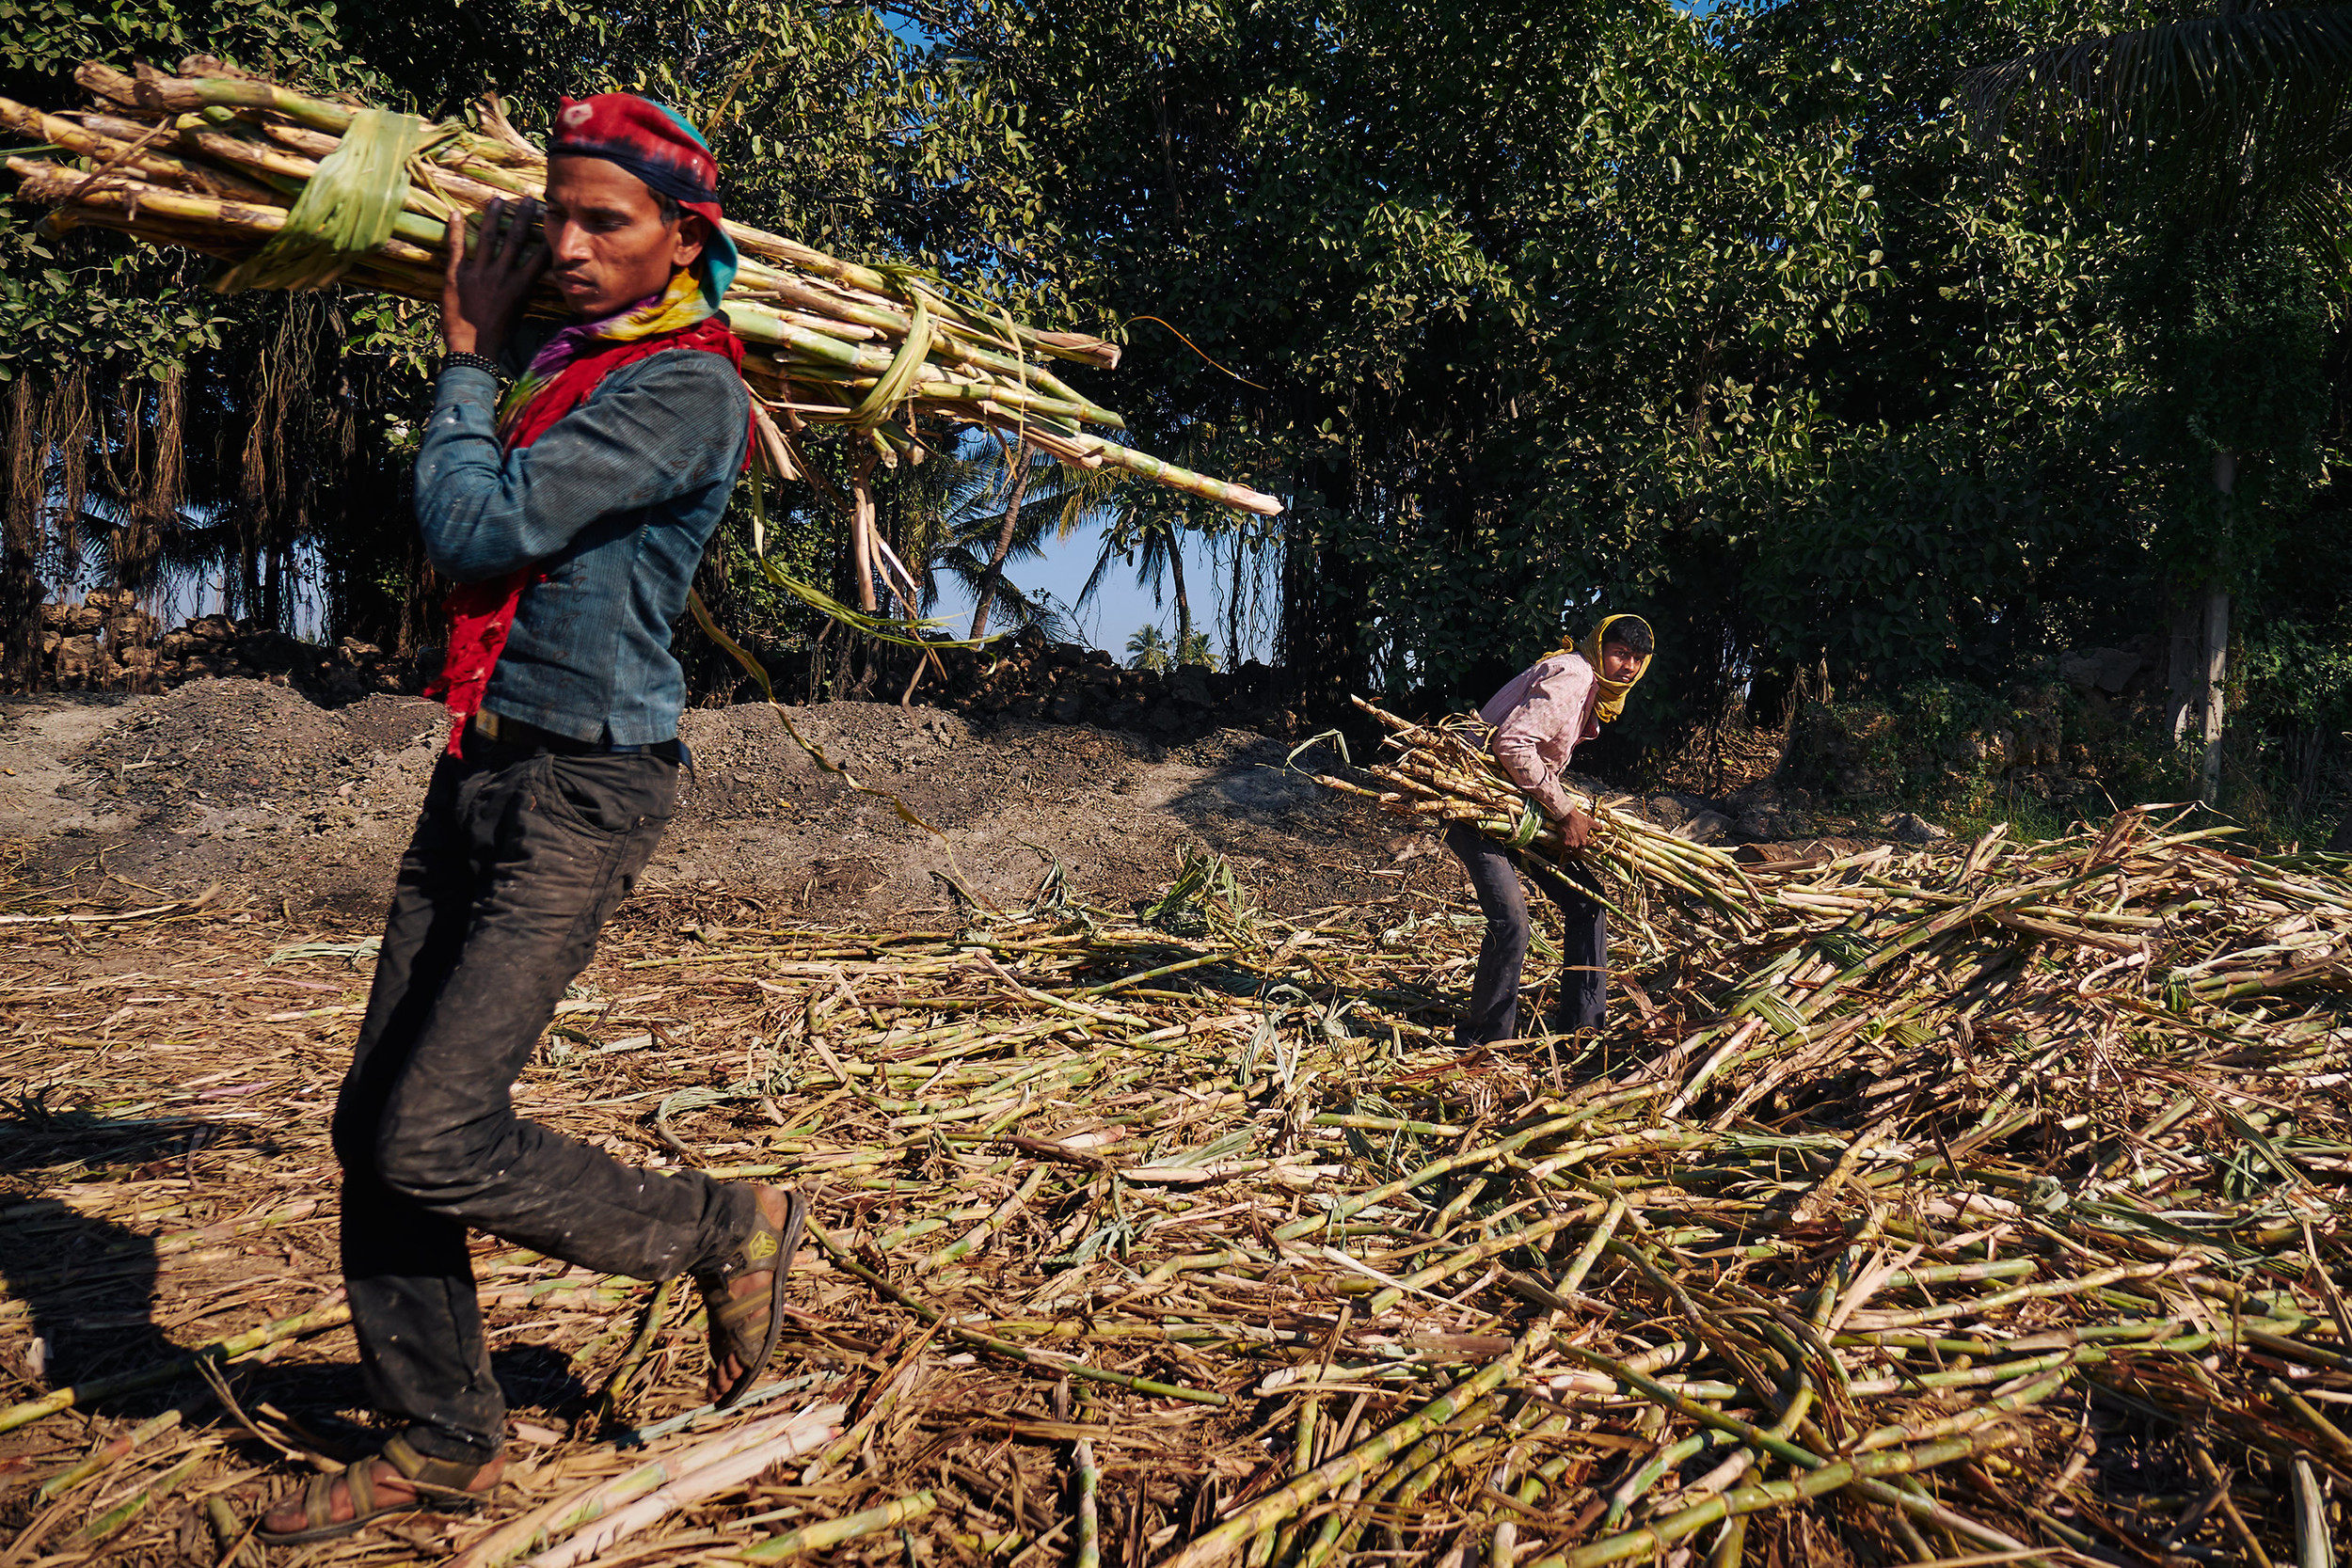 Sugarcane workers carrying sugarcane